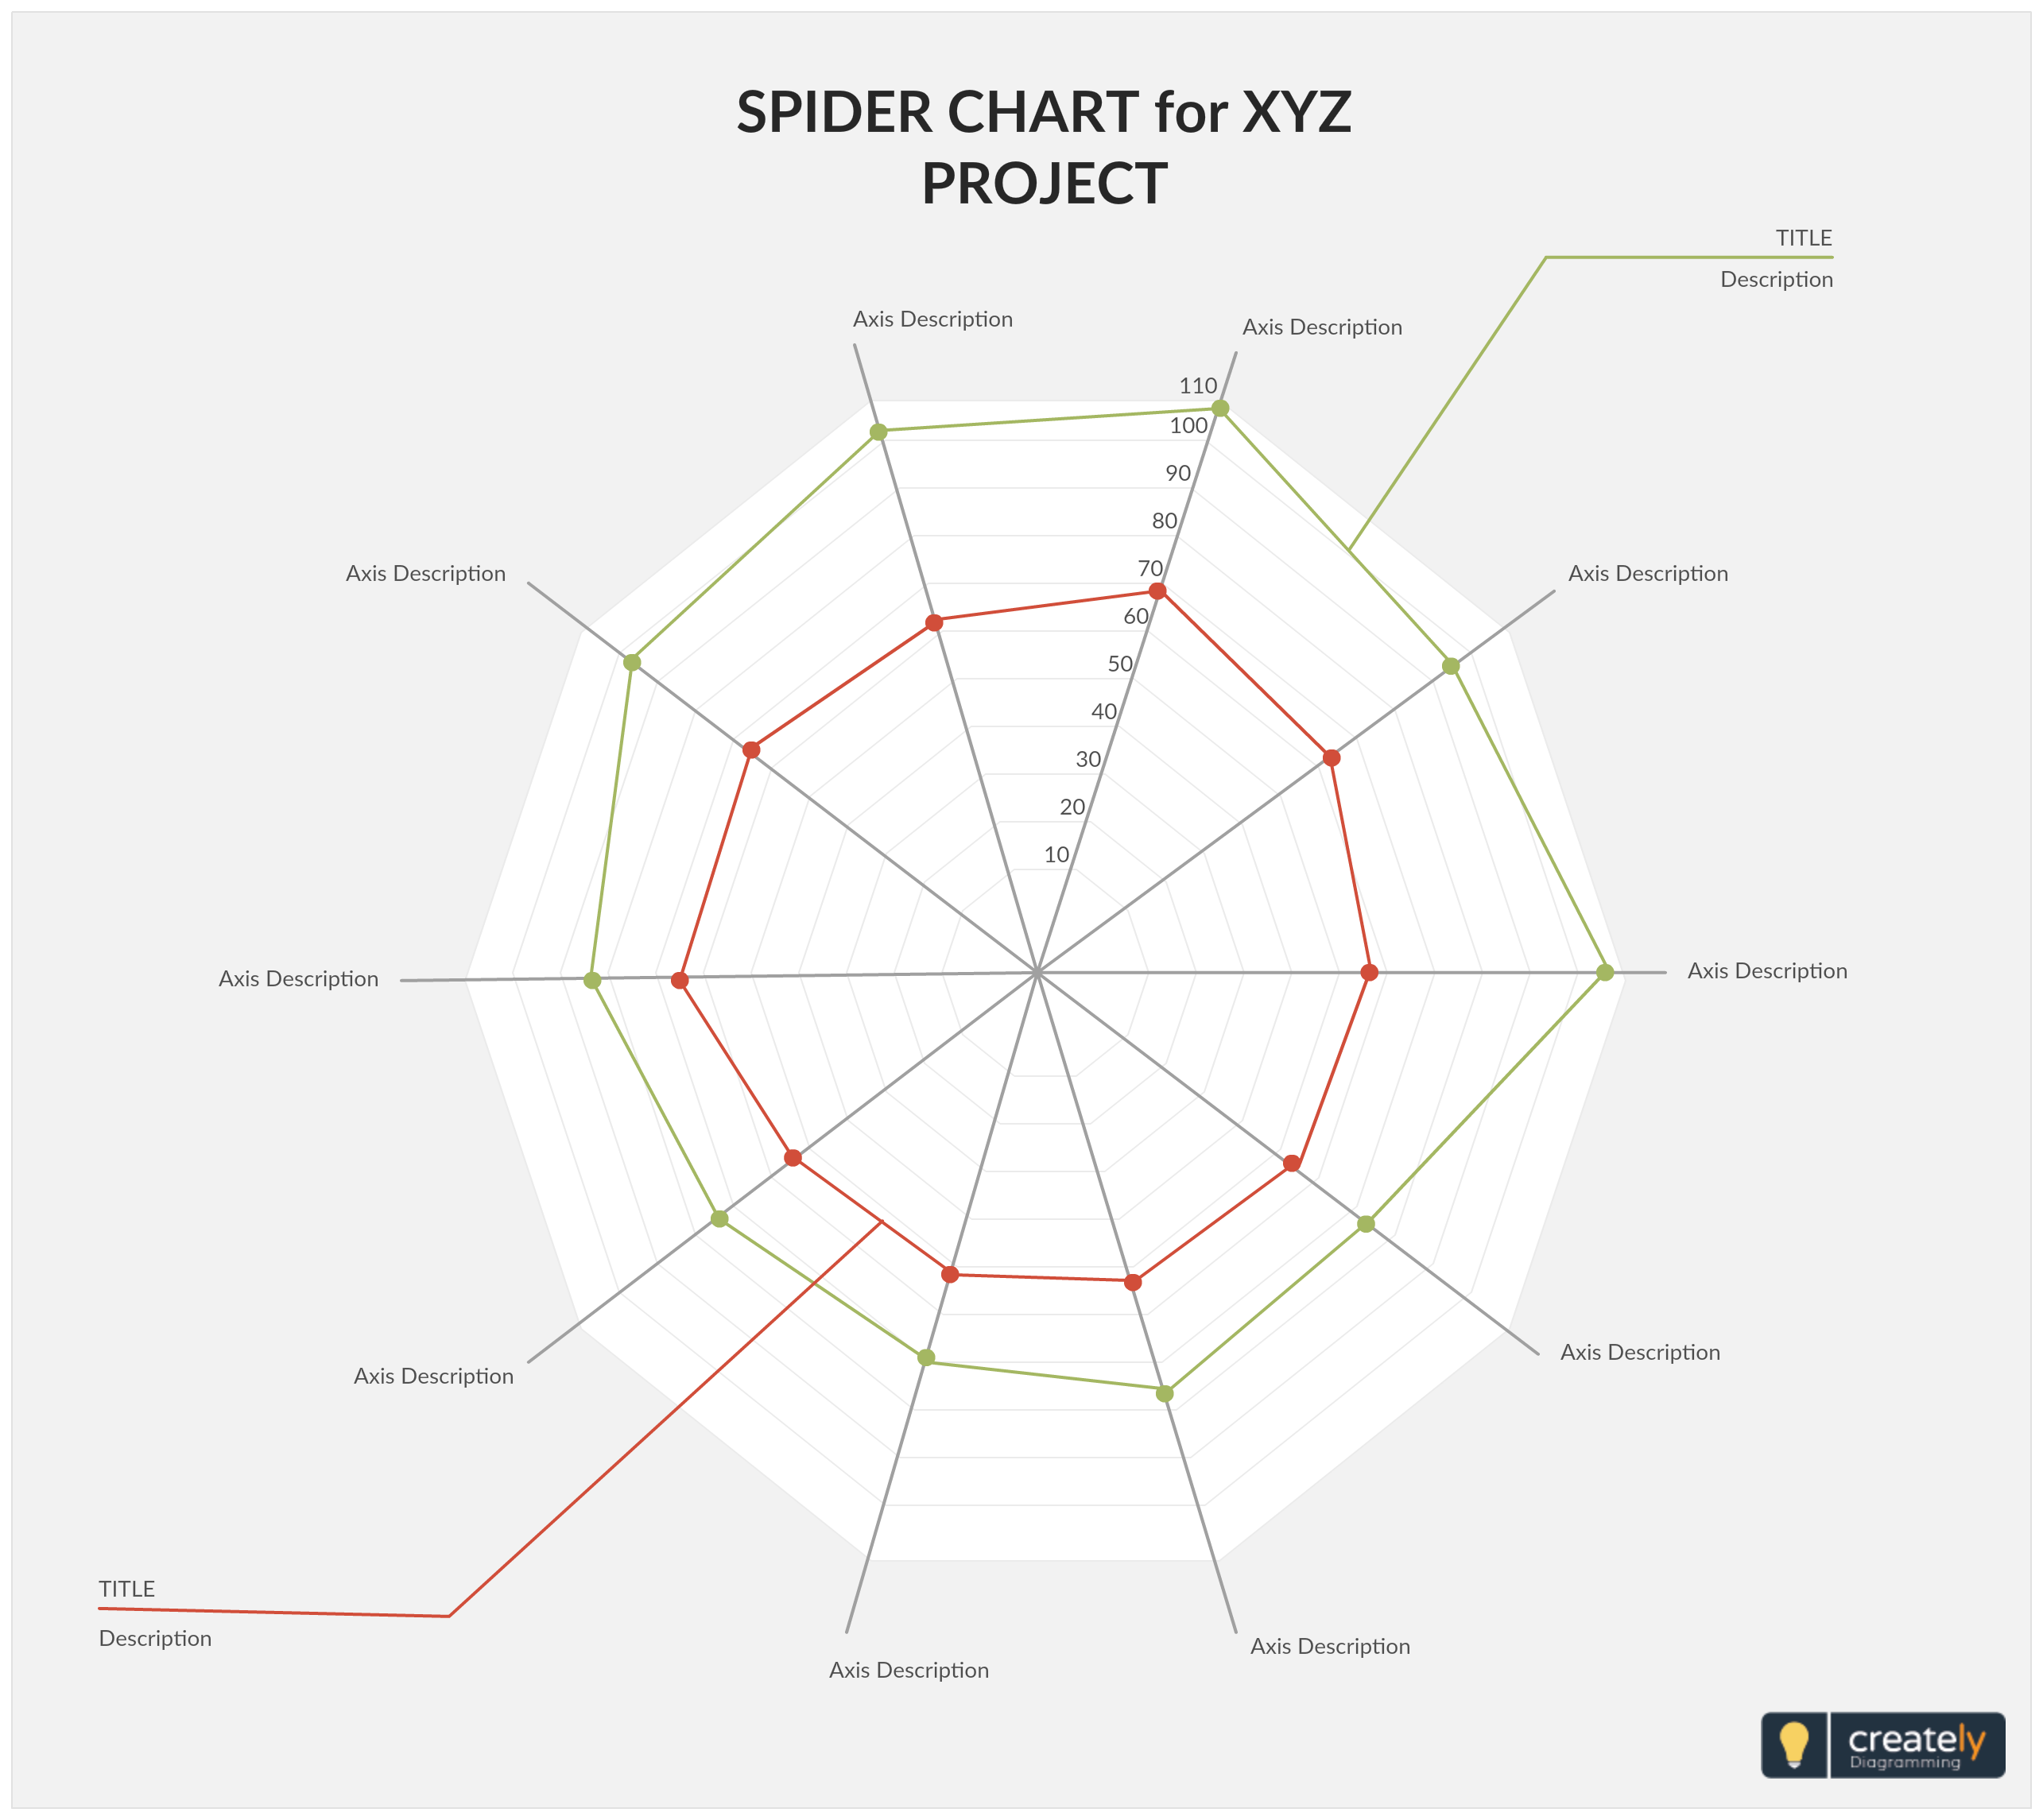 Spider Chart Also Know As Radar Chart Is A Graphical